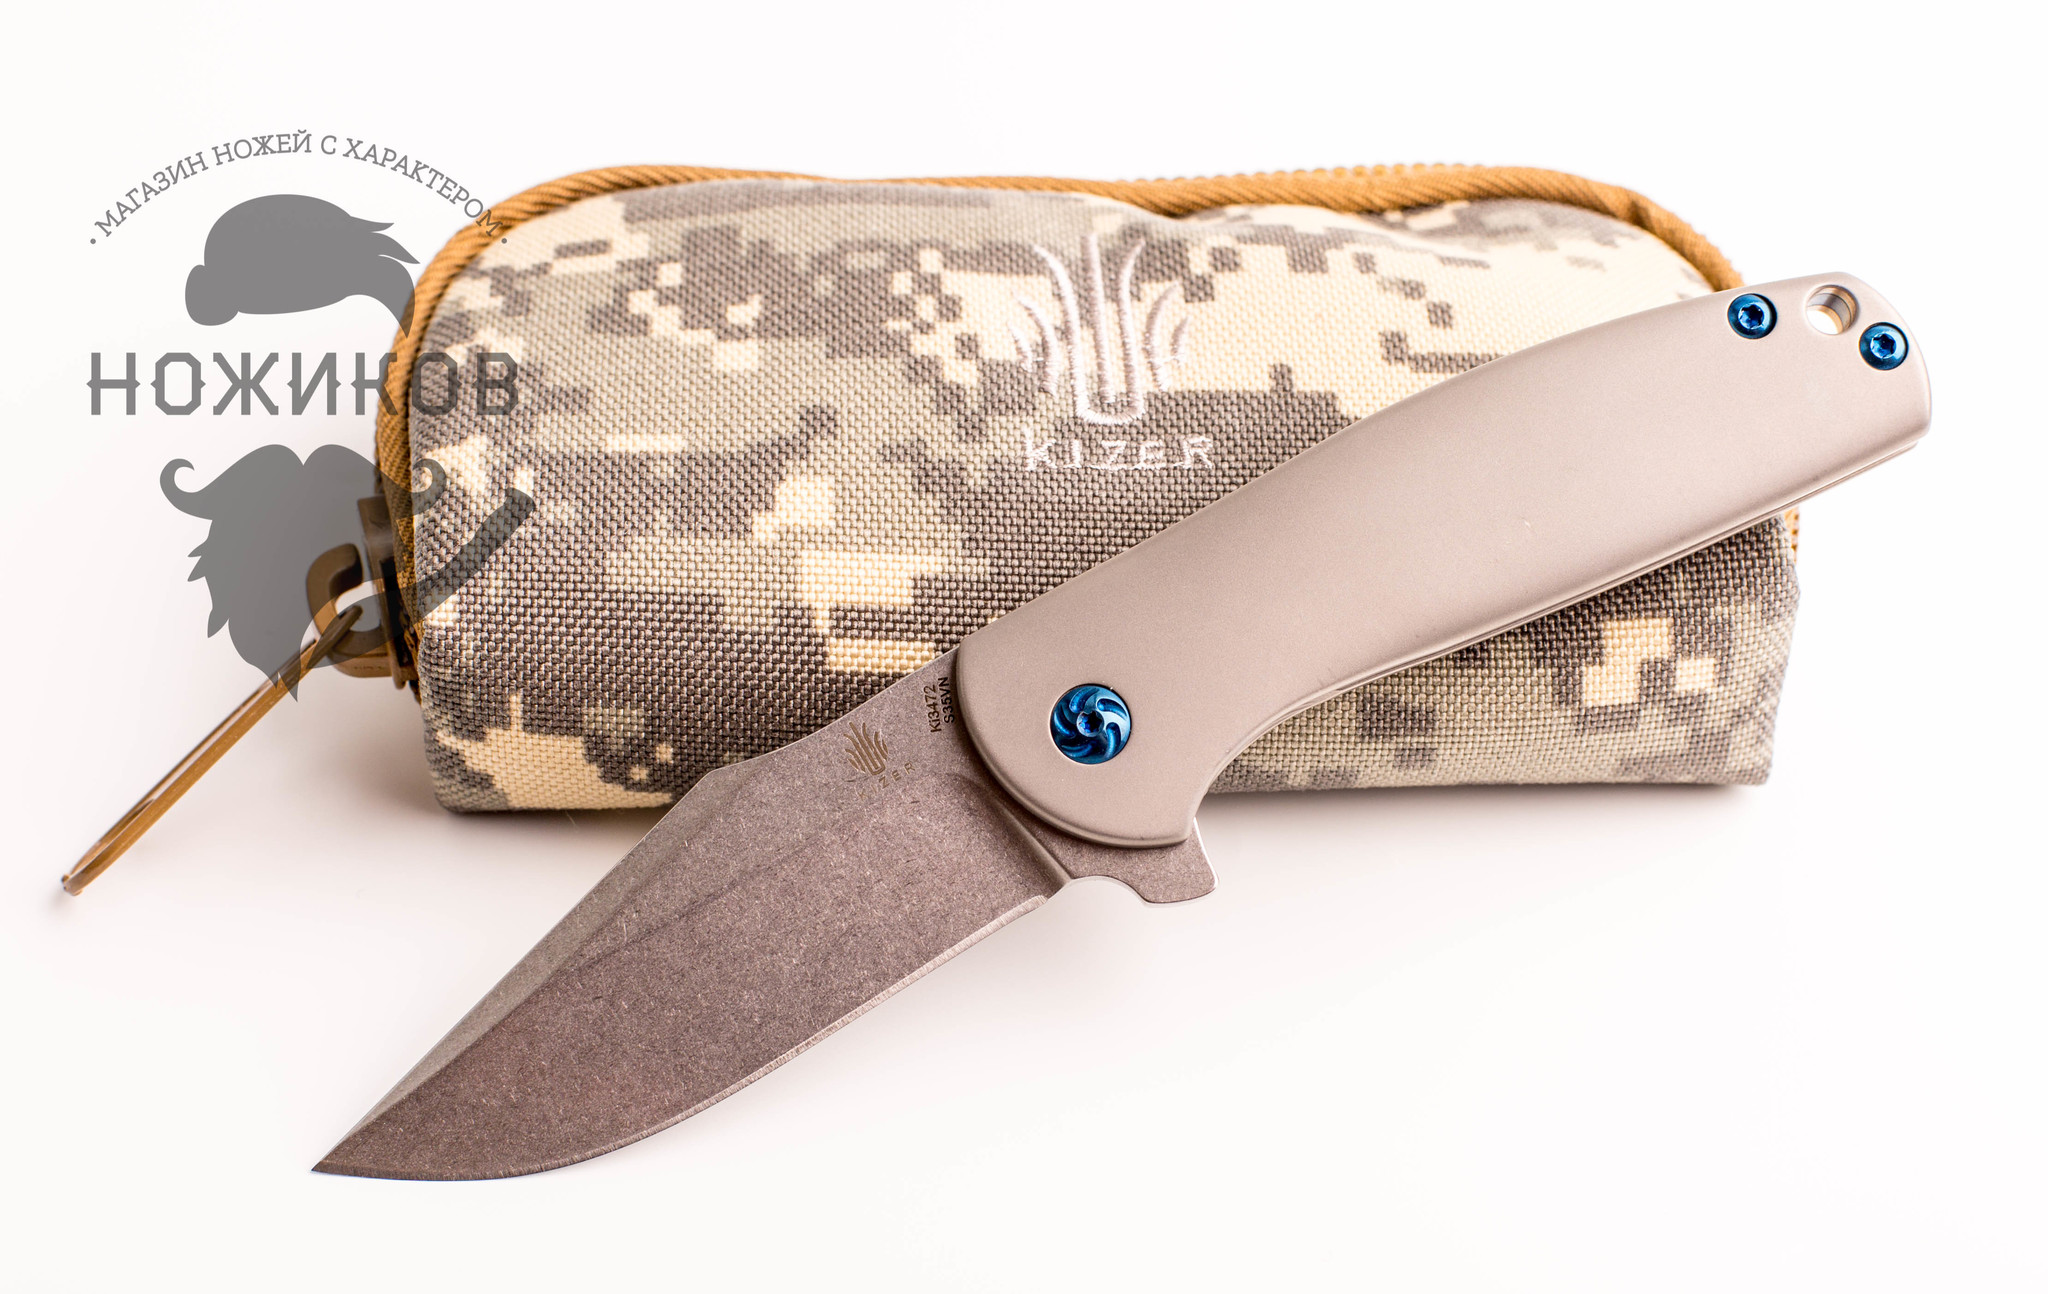 Складной нож Kizer Ursa Minor, сталь CPM-S35VN, рукоять титан складной нож lucky gentleman s pen knife satin finish crucible cpm® s35vn™ carbon fiber handle 8 7 см